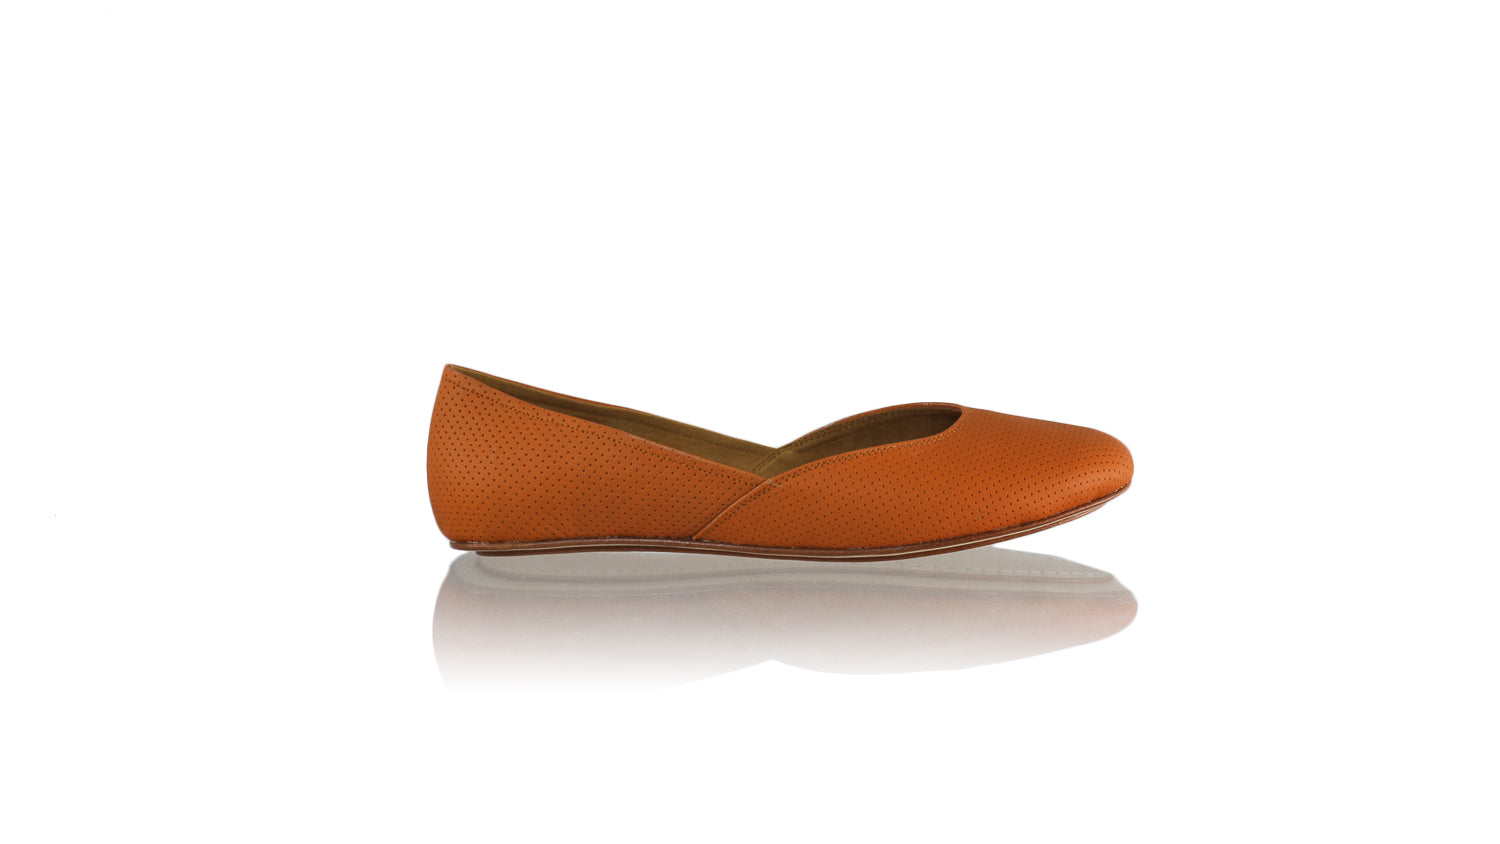 Leather-shoes-Punjab 5mm Ballet - Orange Net-sandals flat-NILUH DJELANTIK-NILUH DJELANTIK